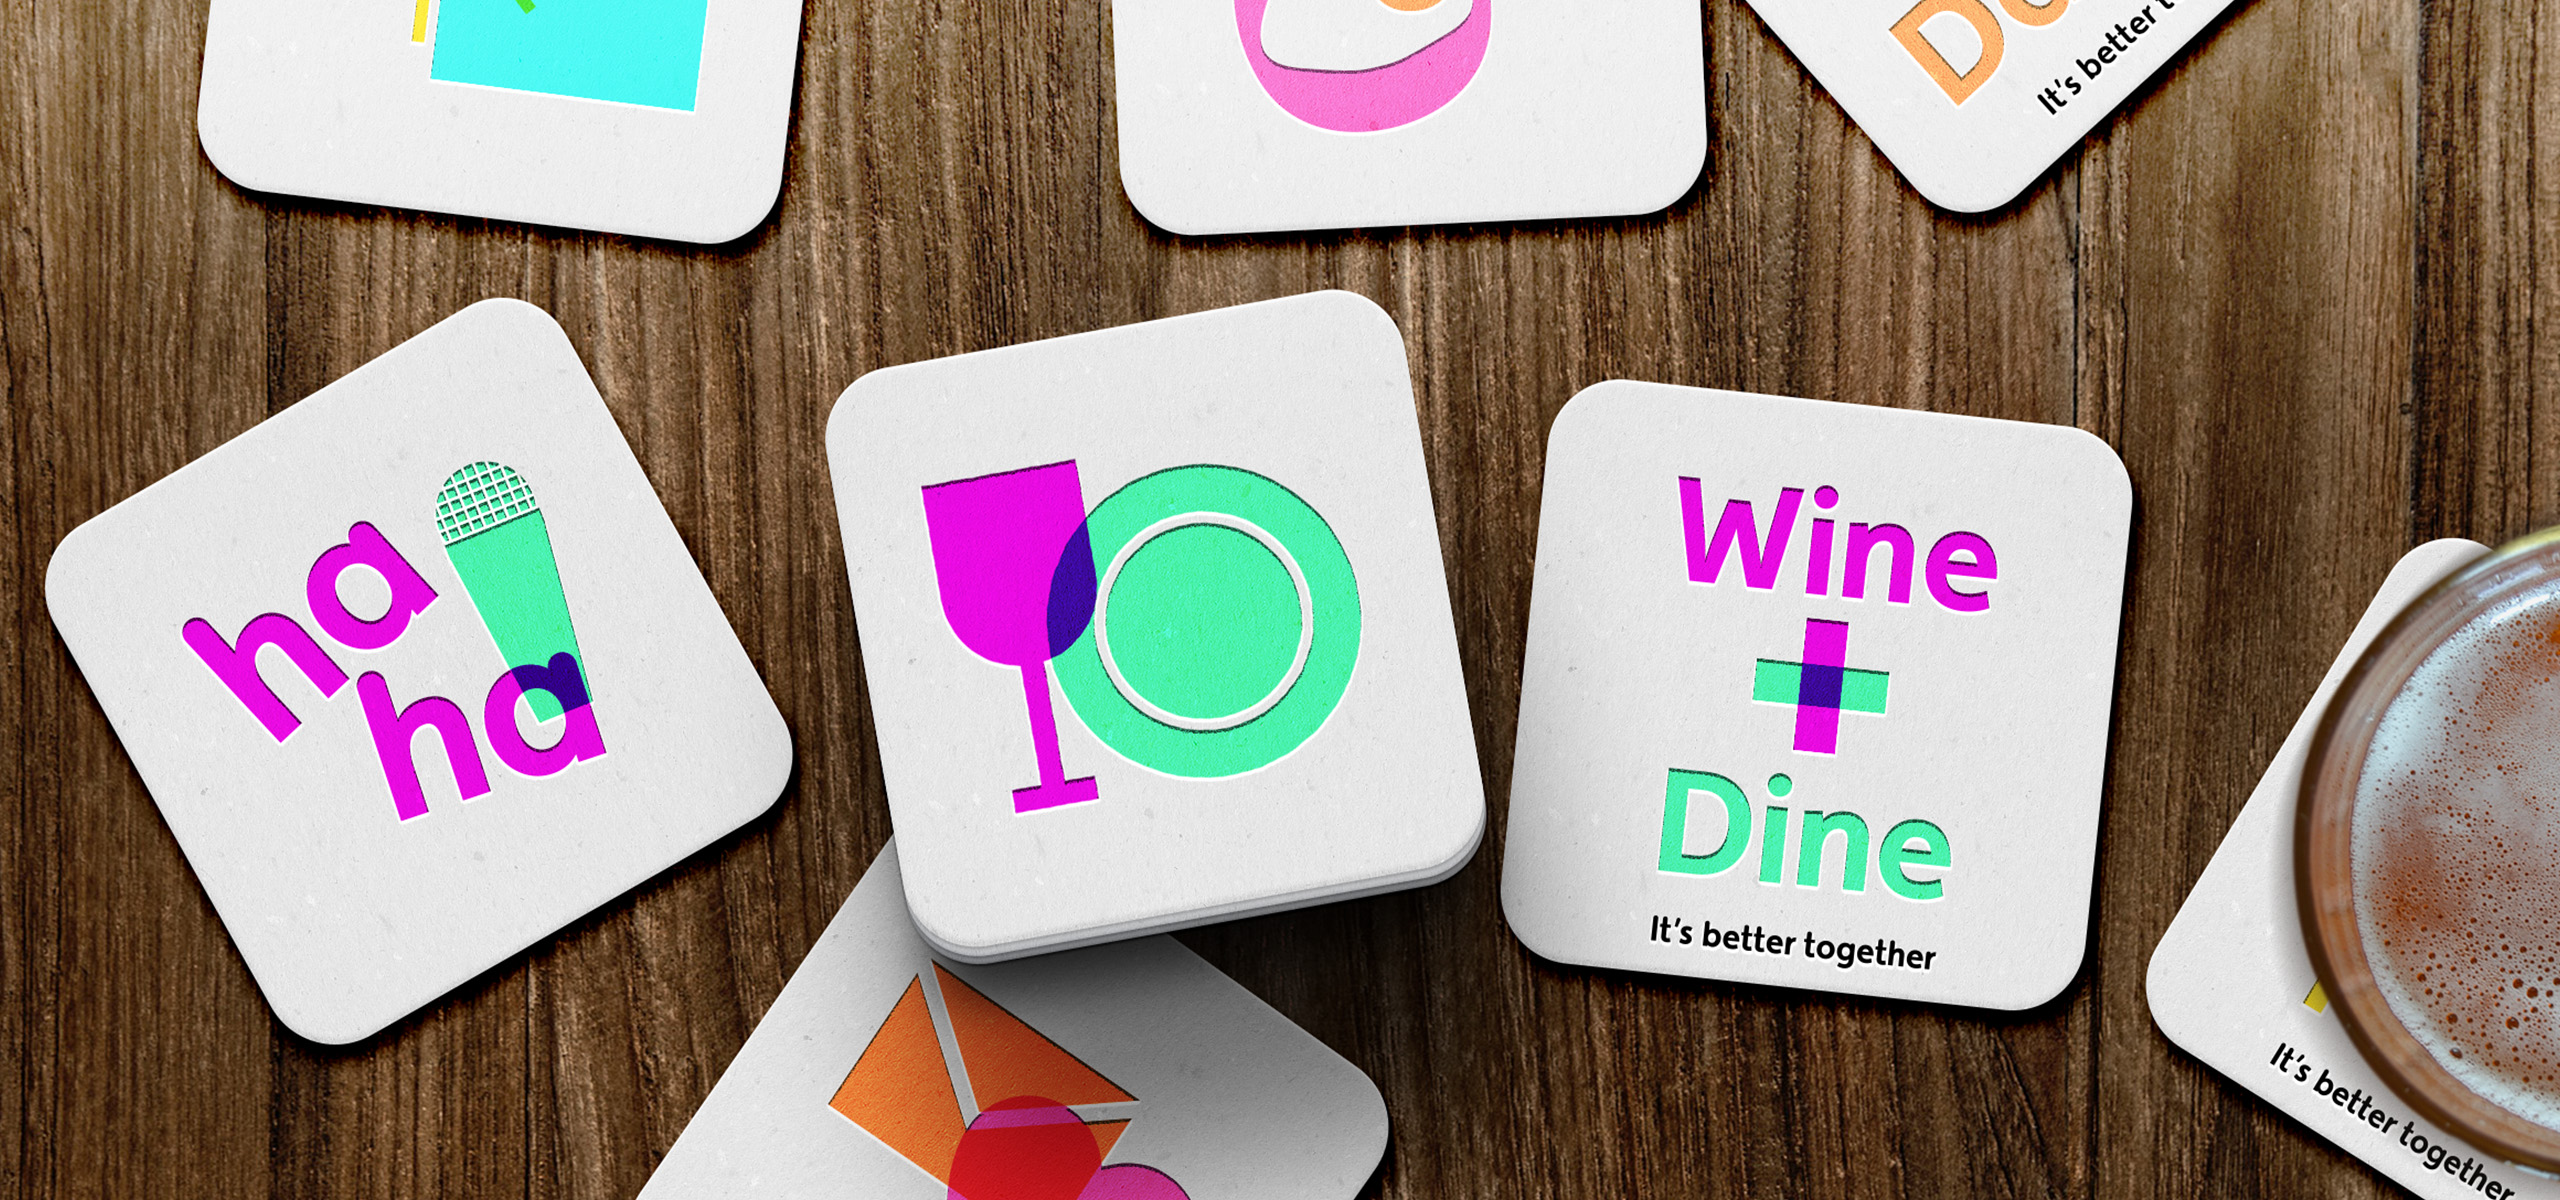 Drinks coasters design for new startup brand My Date Night, designed by White Bear Studio